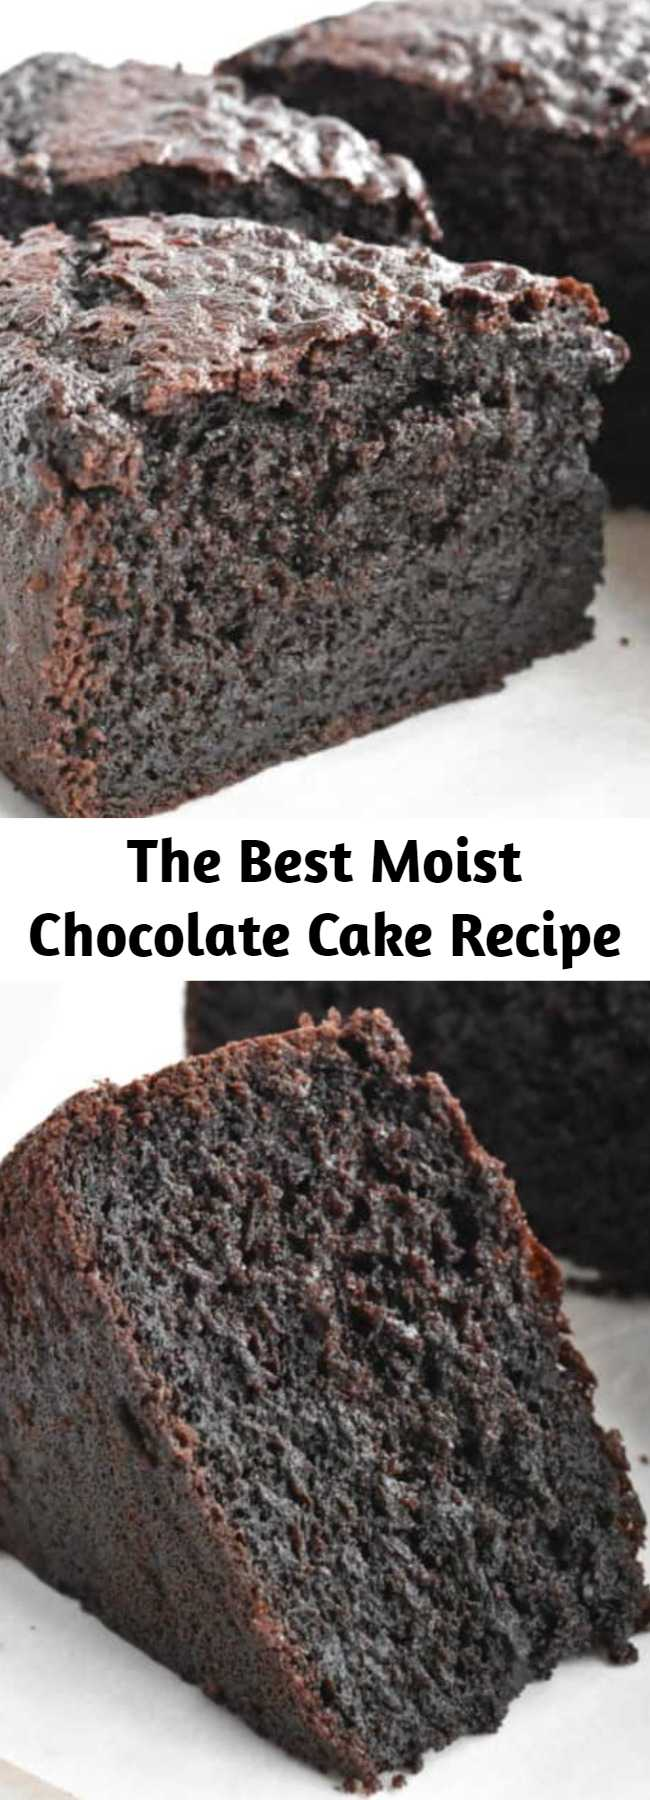 The Best Moist Chocolate Cake Recipe - It doesn't get much better than this ultra moist and rich chocolate cake! This is my go-to chocolate cake recipe for birthdays, dinner parties or just to enjoy. This cake only needs one bowl and no electric mixer.